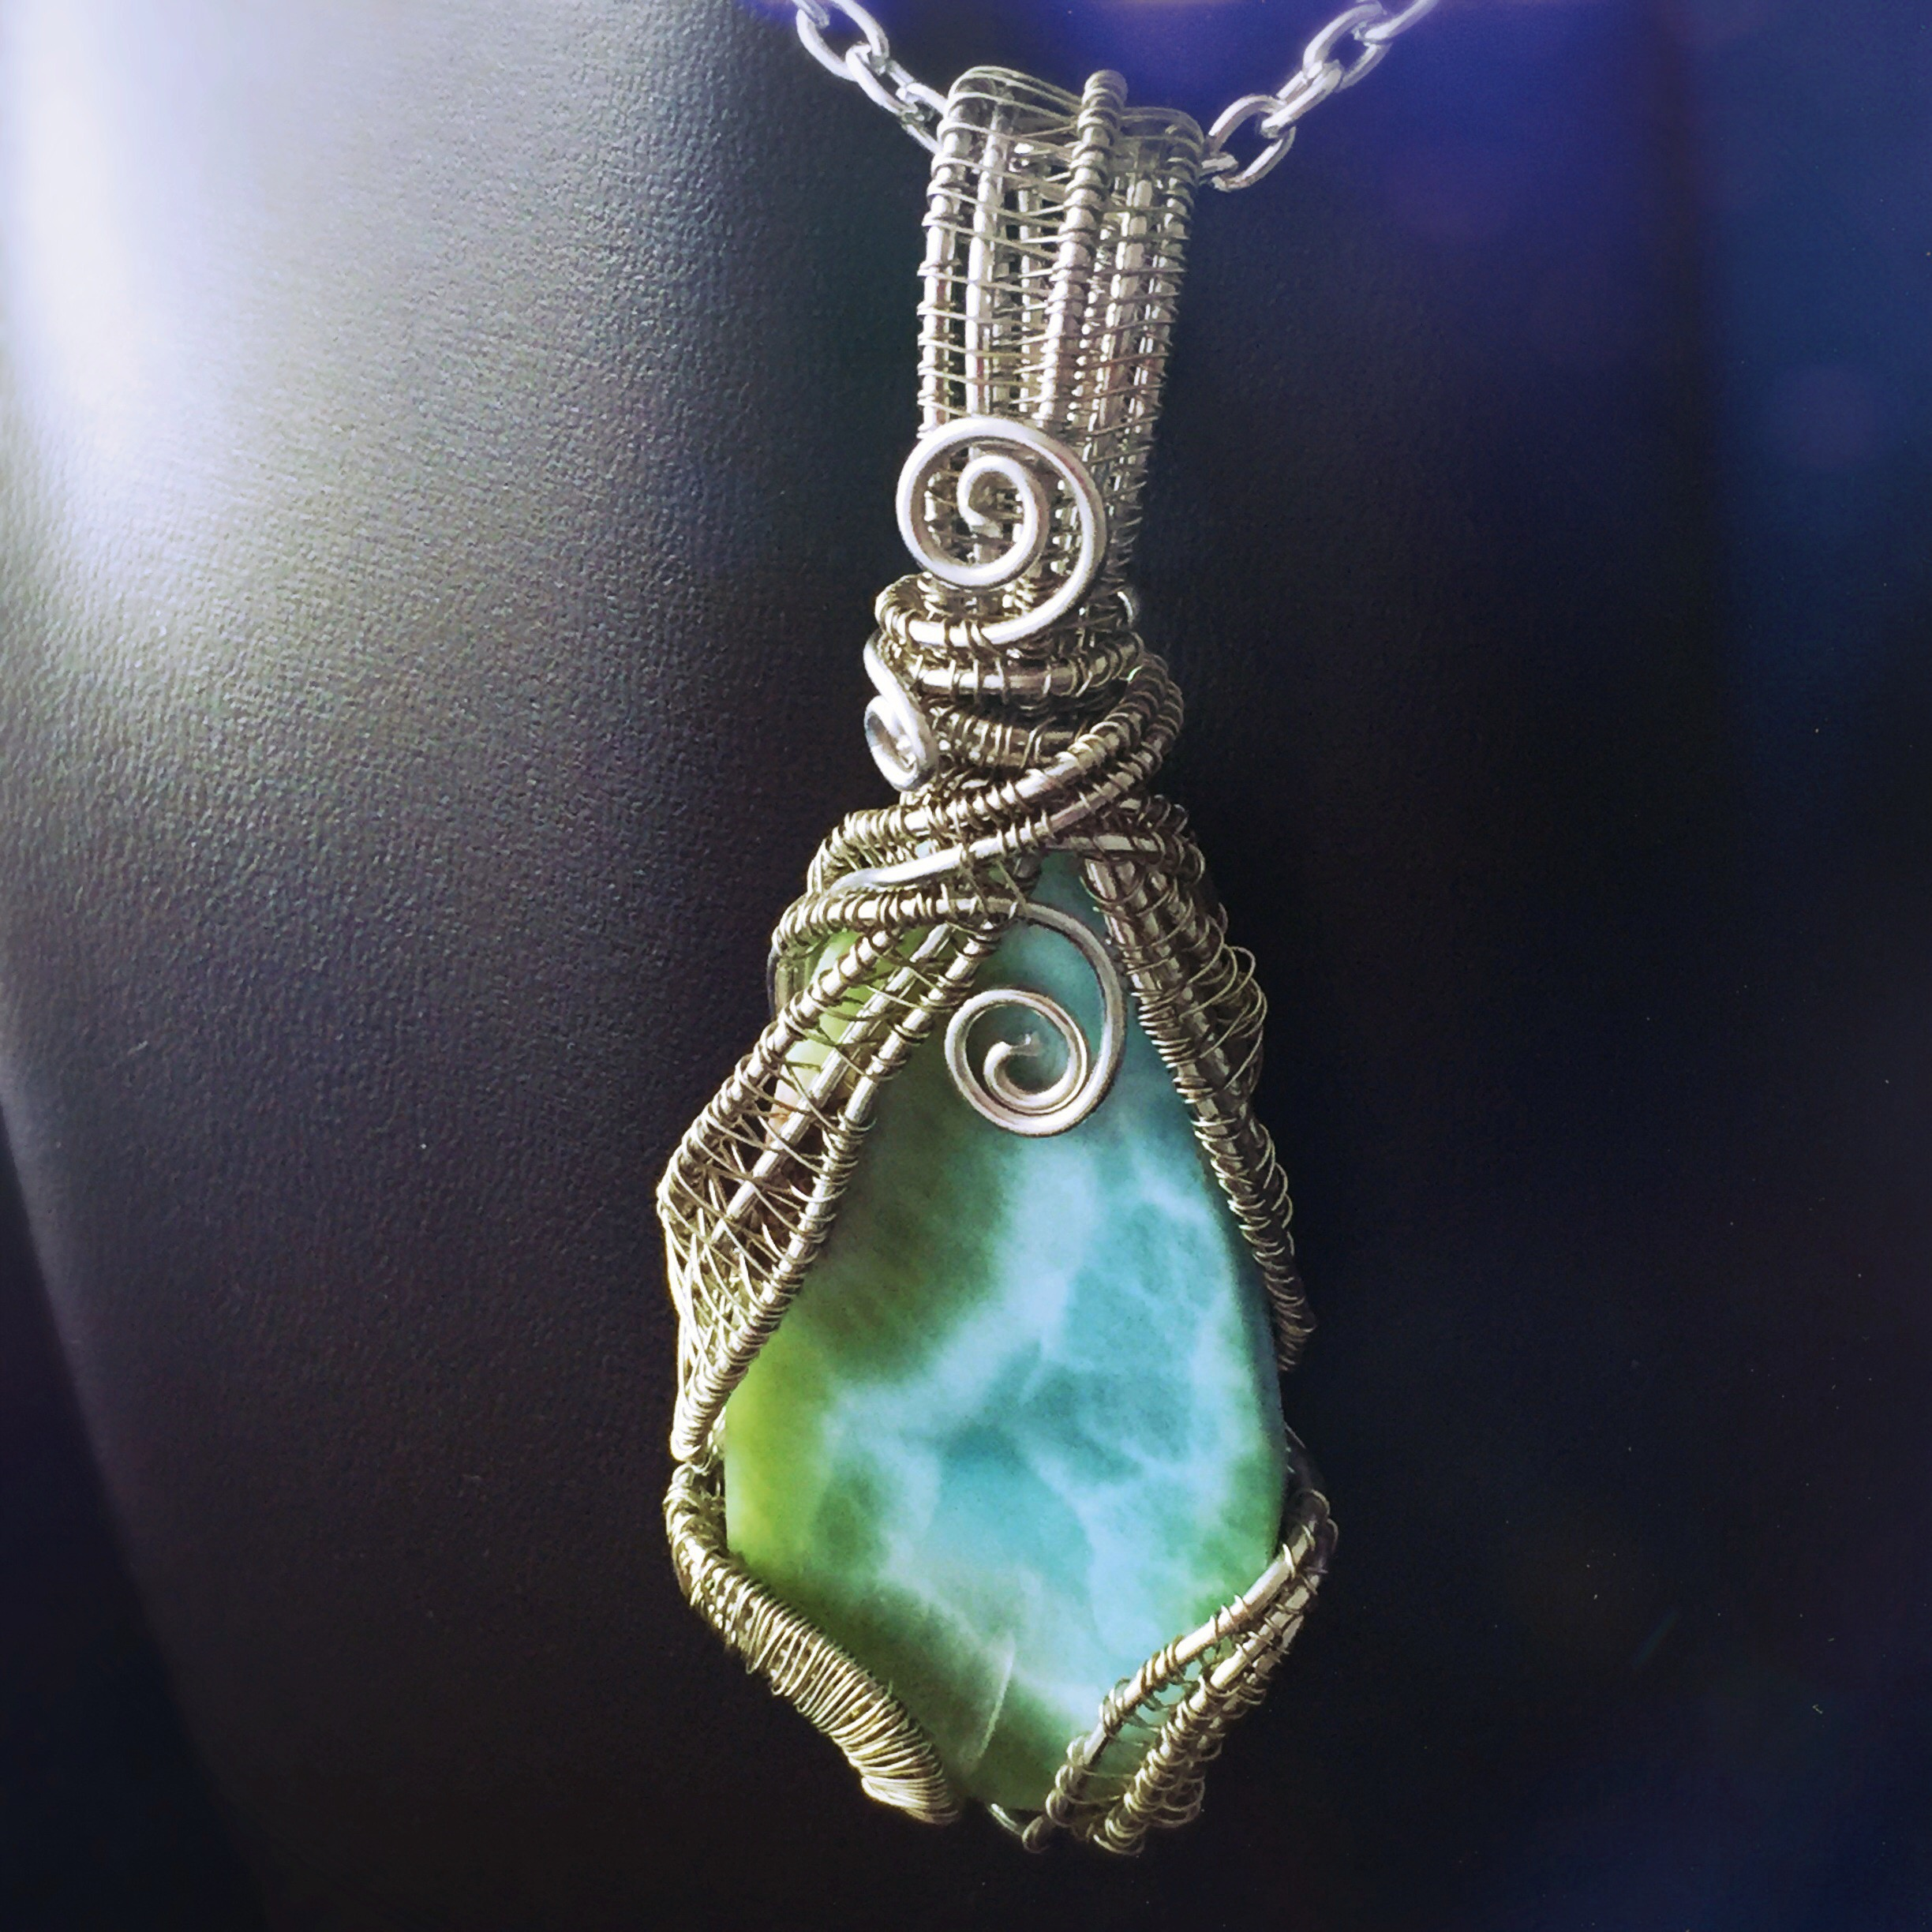 A beautiful rare stone, perfect for Scorpio energy! Find this larimar by And Zen Some by clicking here .